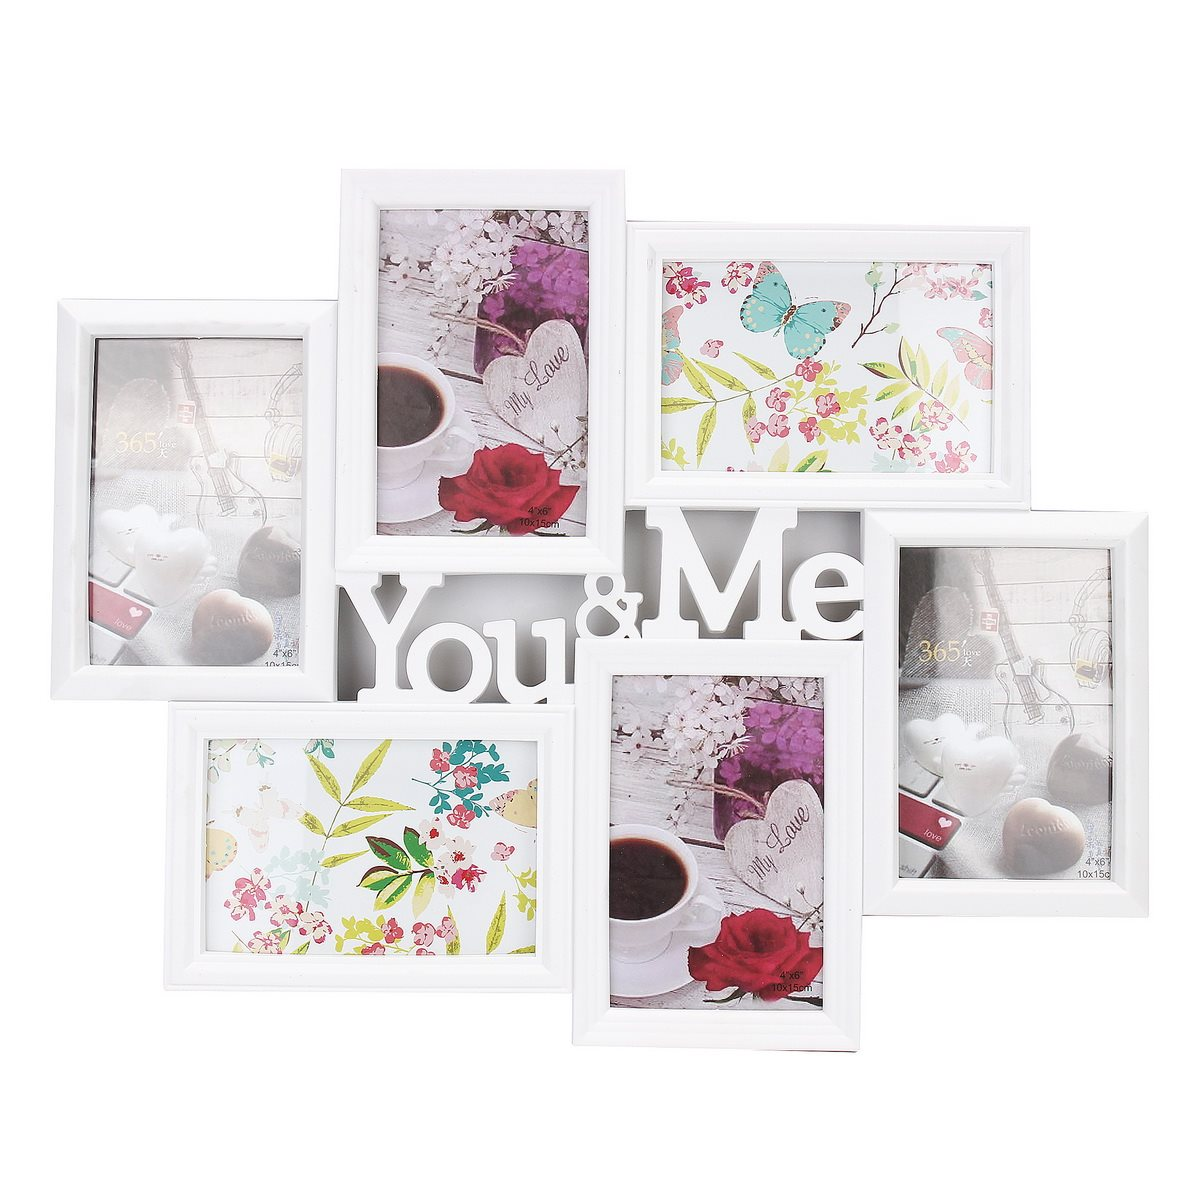 You me pictures 6 images display aperture photo frame wall for Home interiors and gifts framed art